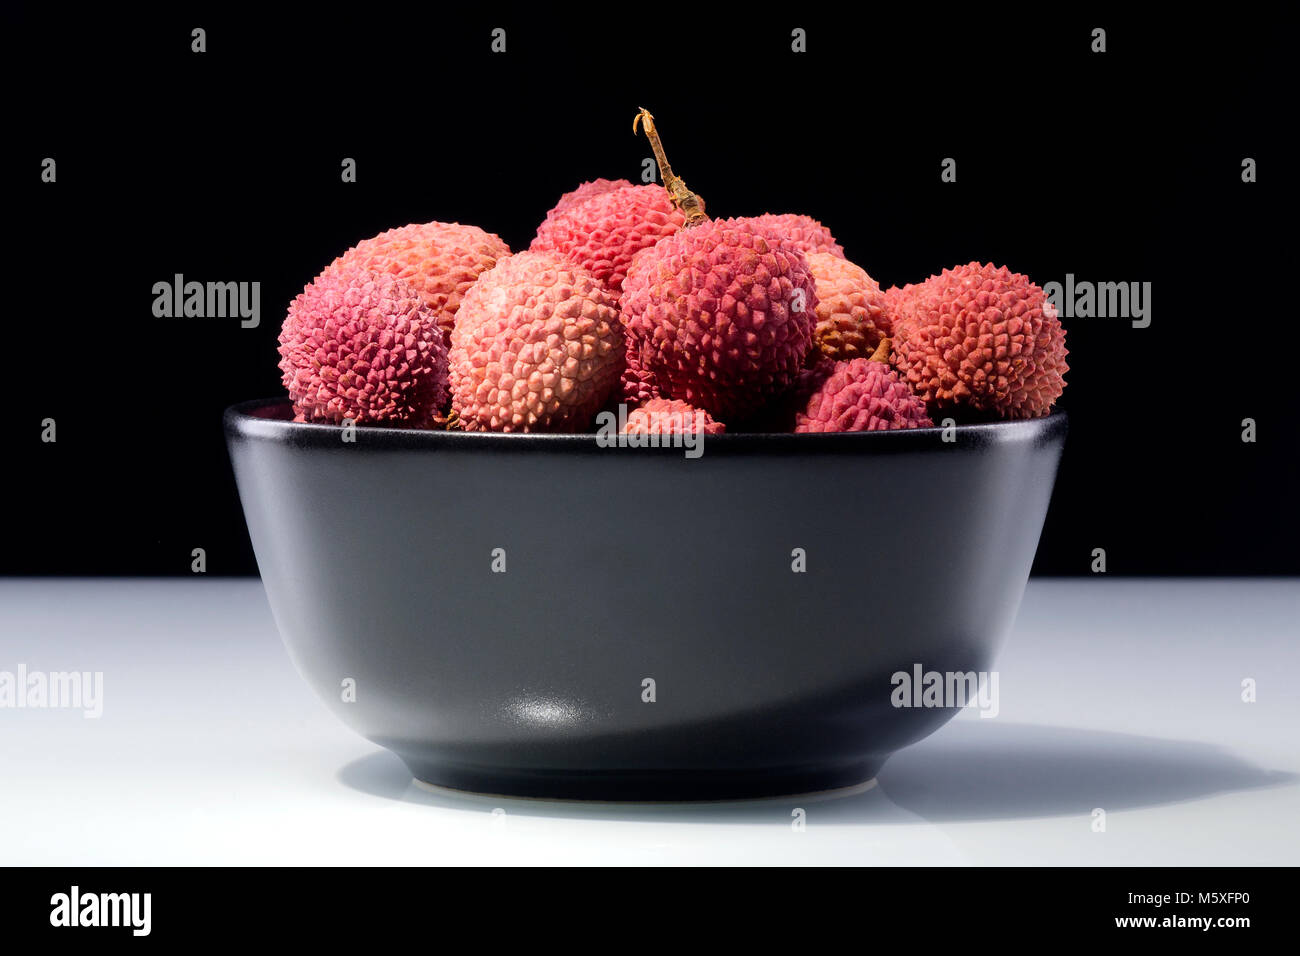 lychee fruits in a bowl isolated on dark background - Stock Image